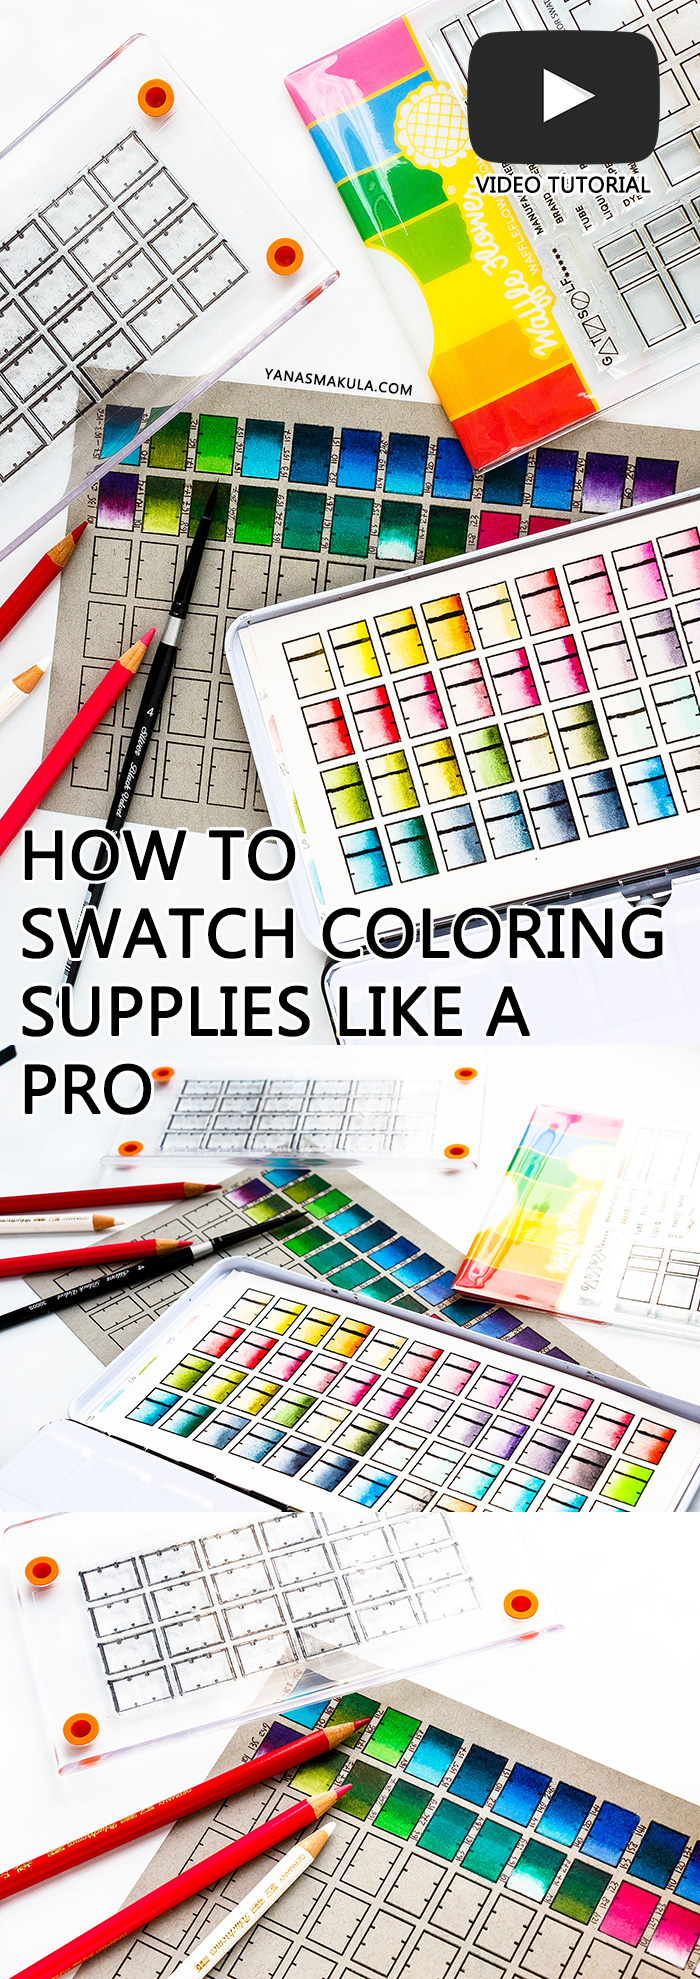 How to Swatch Coloring Mediums like a PRO using Swatching Stamps from Waffle Flower Crafts. Examples show Daniel Smith watercolor swatches and Faber Castell Polychromos Pencils swatches. #colorswatches #howtoswatchwatercolor #howtoswatchcoloredpencils